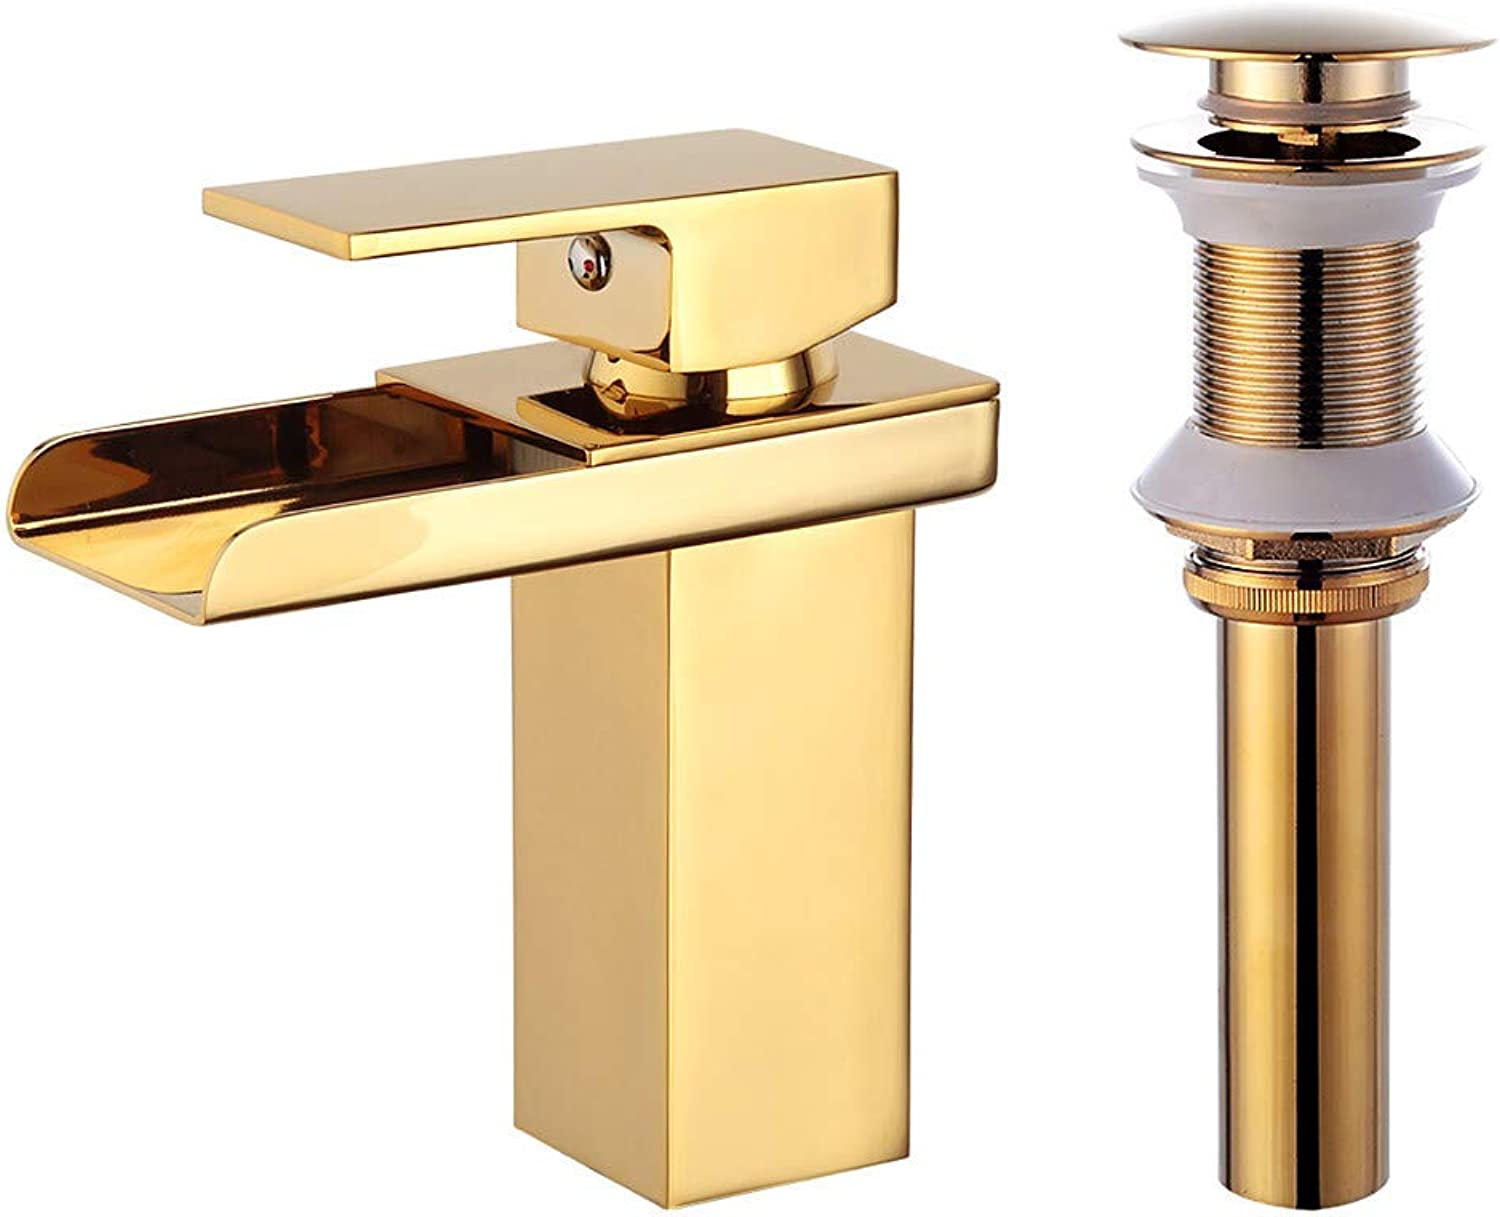 Bathroom Sink Faucet - Waterfall gold Centerset One Hole